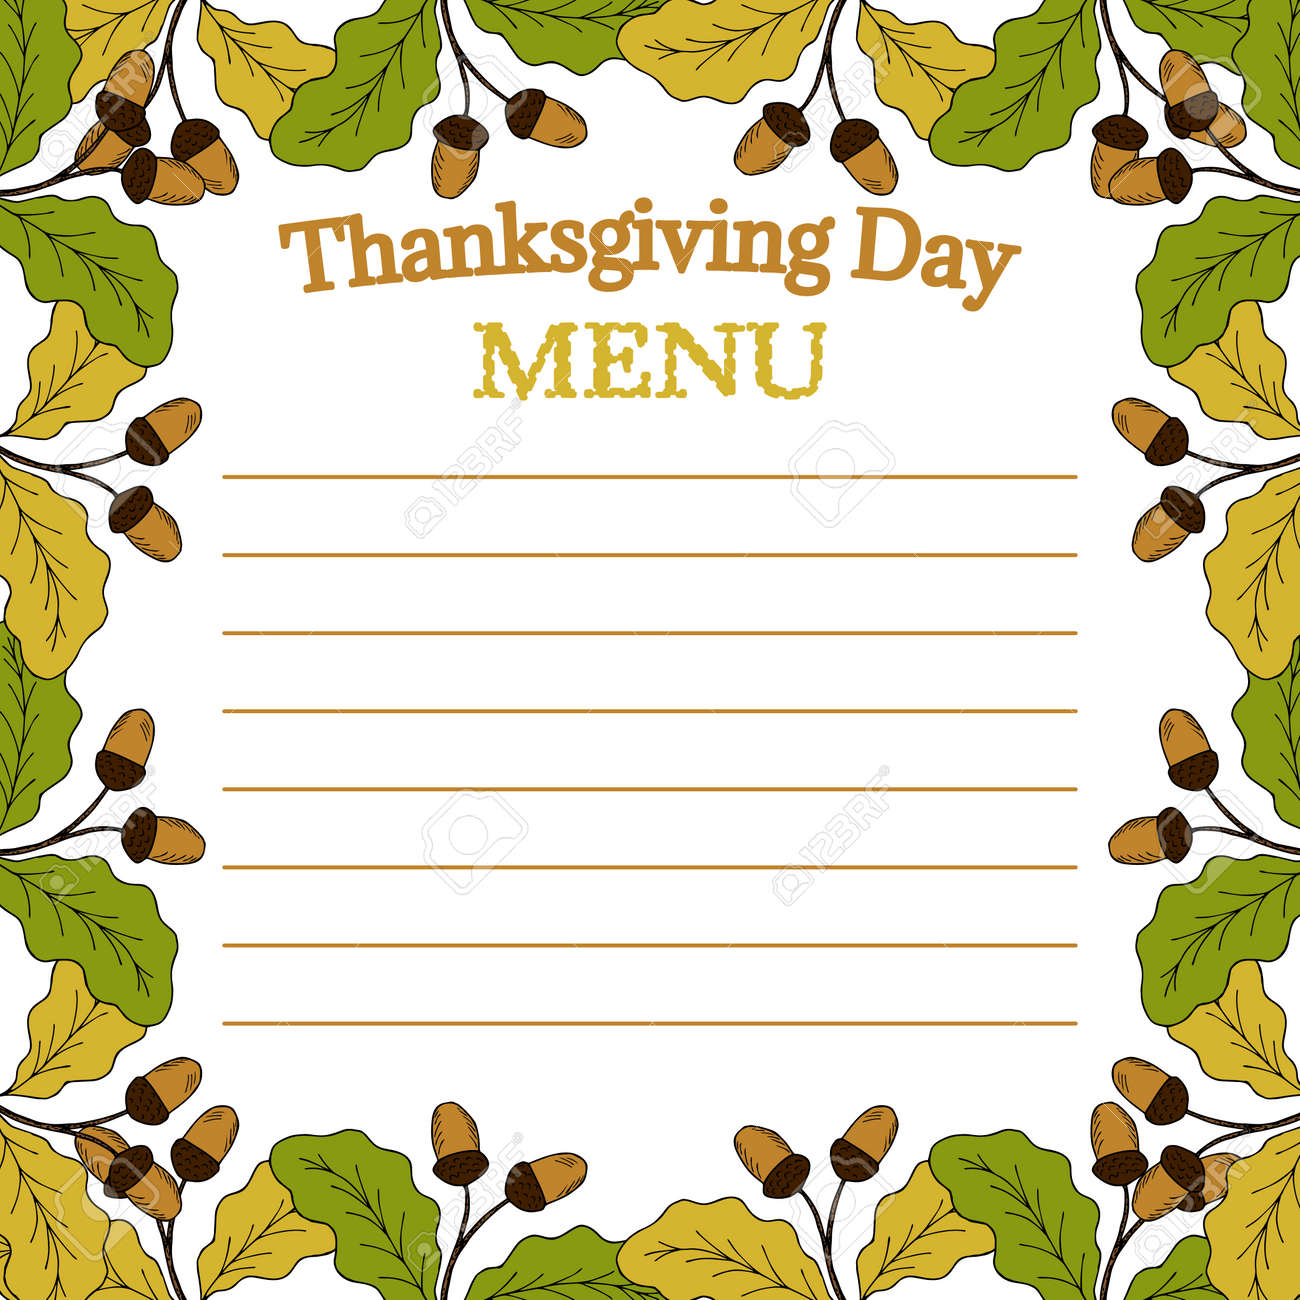 Thanksgiving Day Menu Sketch Template For Restaurant And Cafe